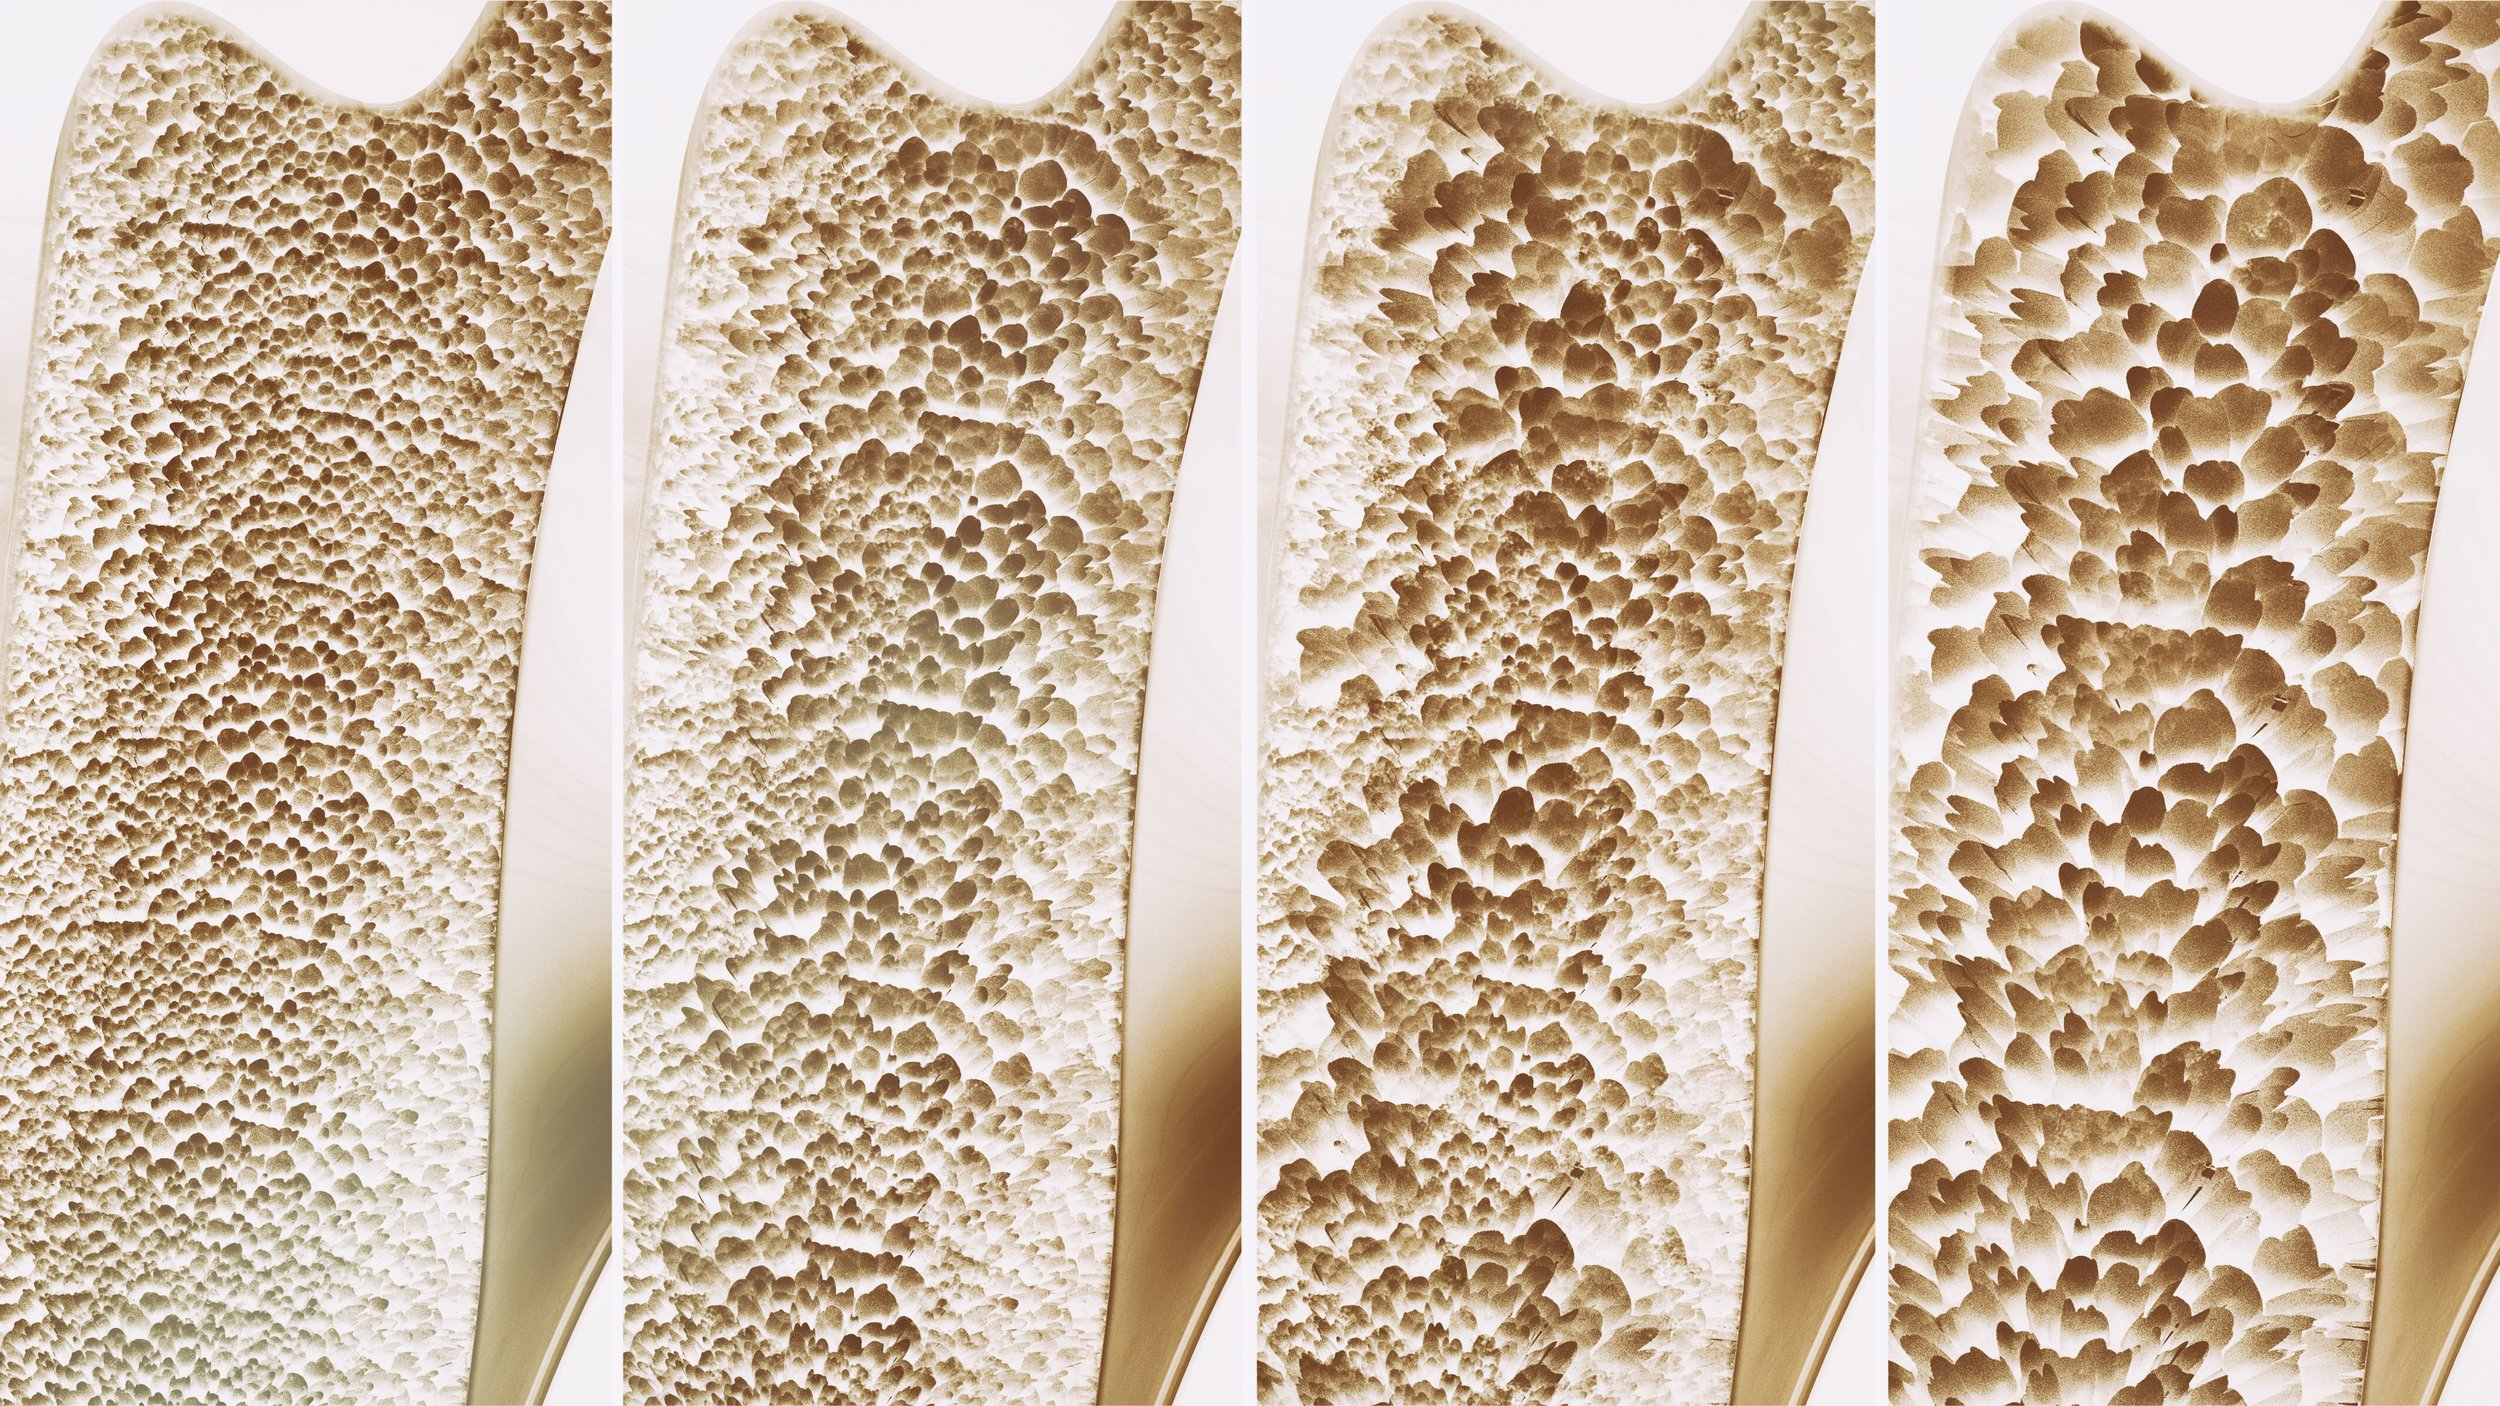 Healthy bone (left), osteopenia (middle images), osteoporosis (right)